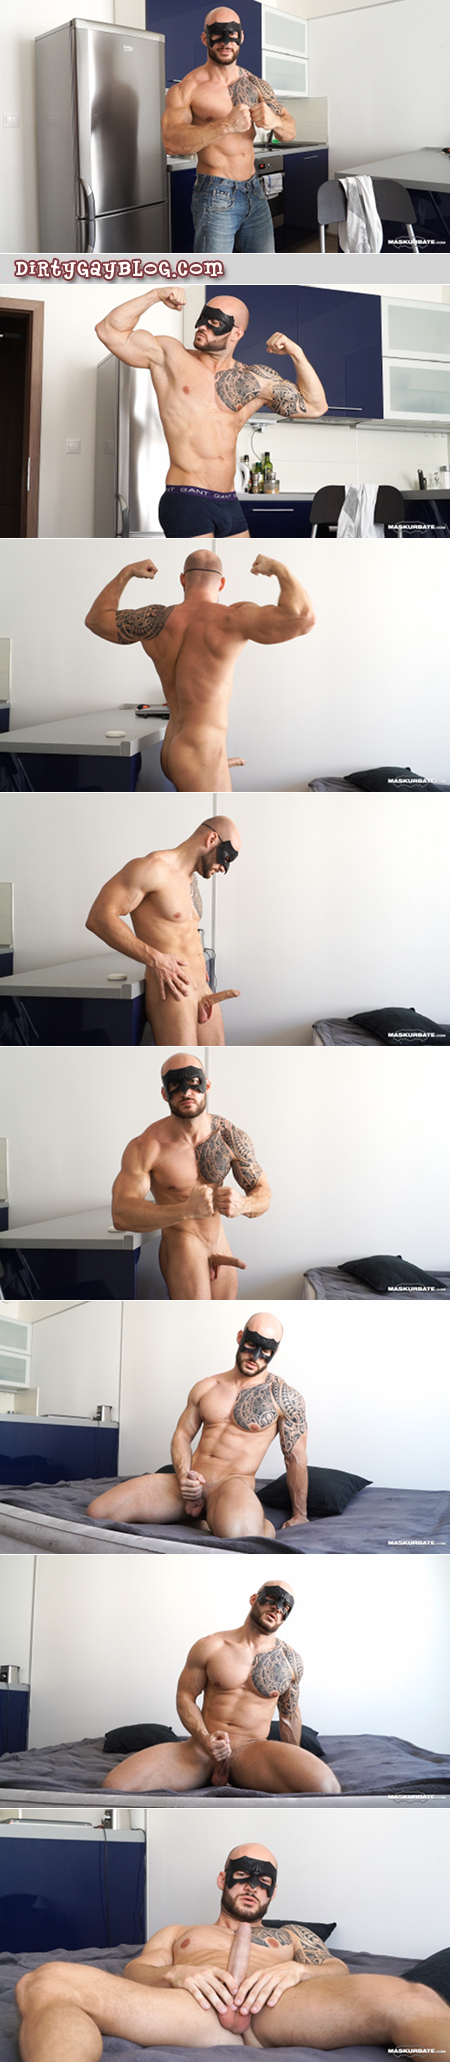 Hung uncut Frenchman bodybuilder nude with an erection.